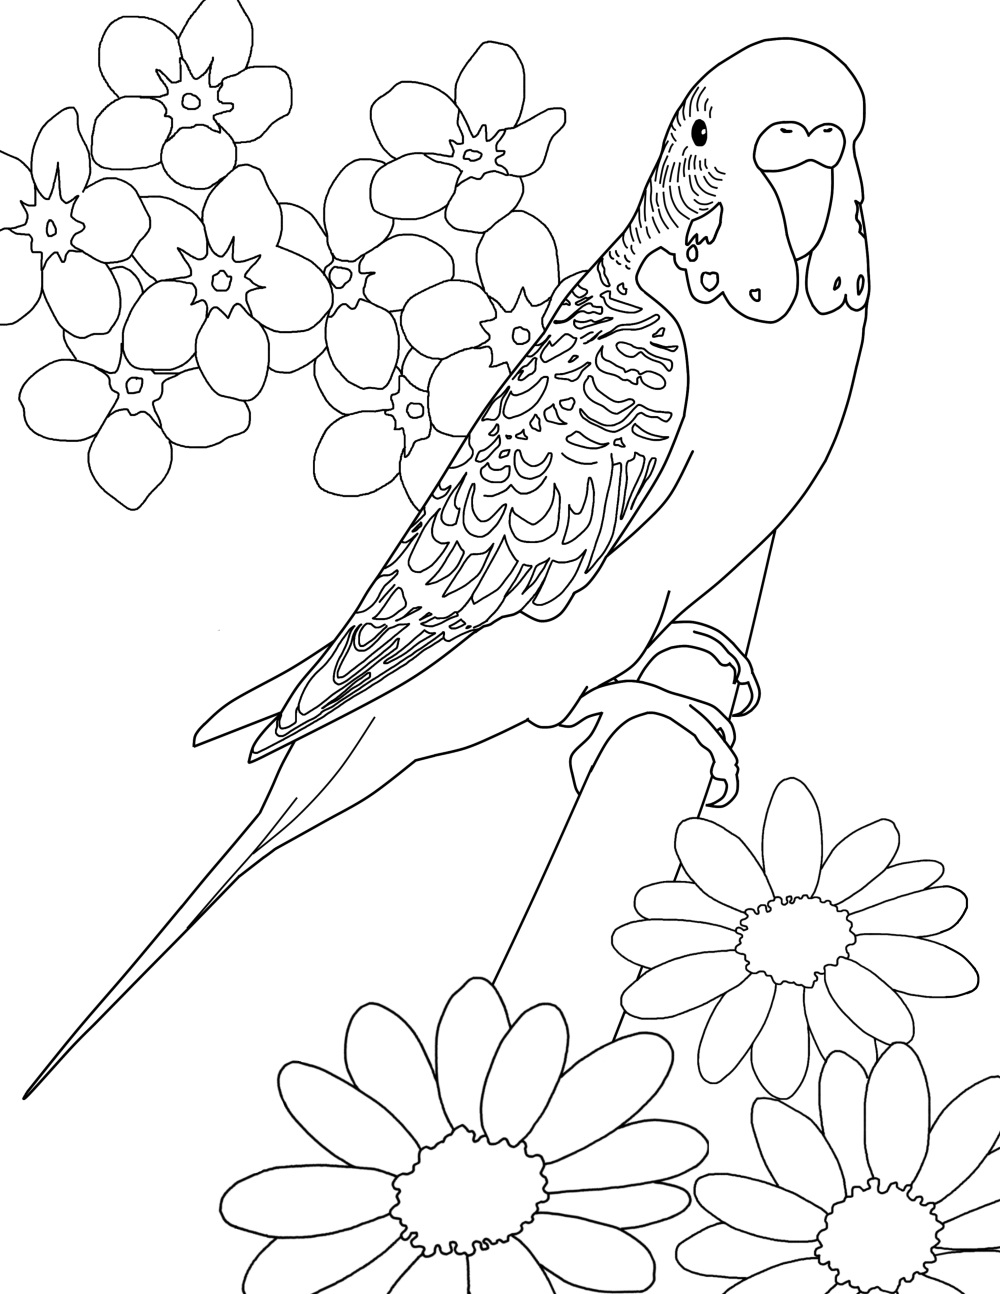 Parakeet coloring #19, Download drawings